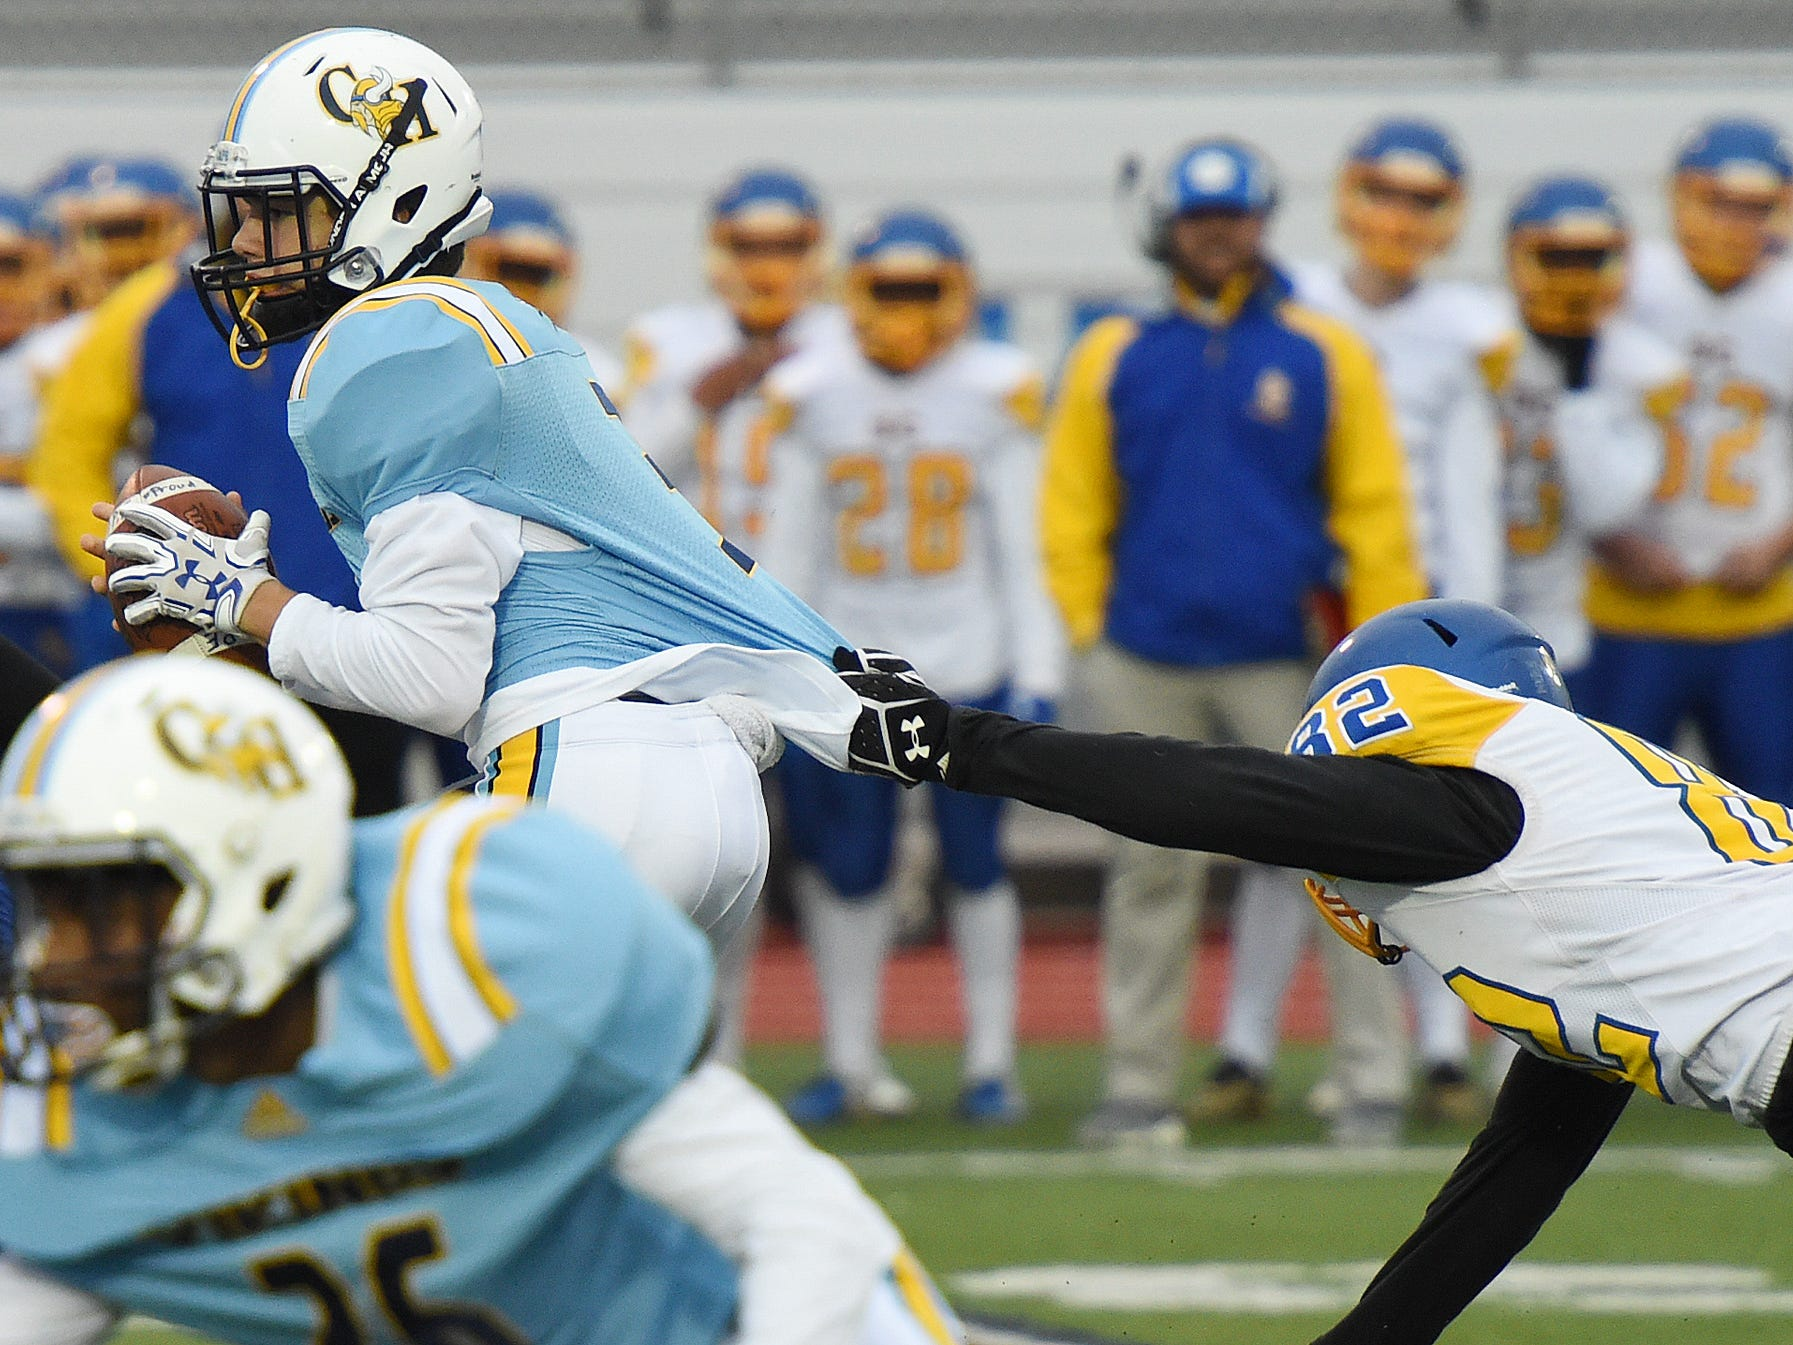 Cape's quarterback Samuel Jones gets pulled down by Sussex Central's  Corgan McGlothan during the game in Lewes on Oct. 26, 2018.